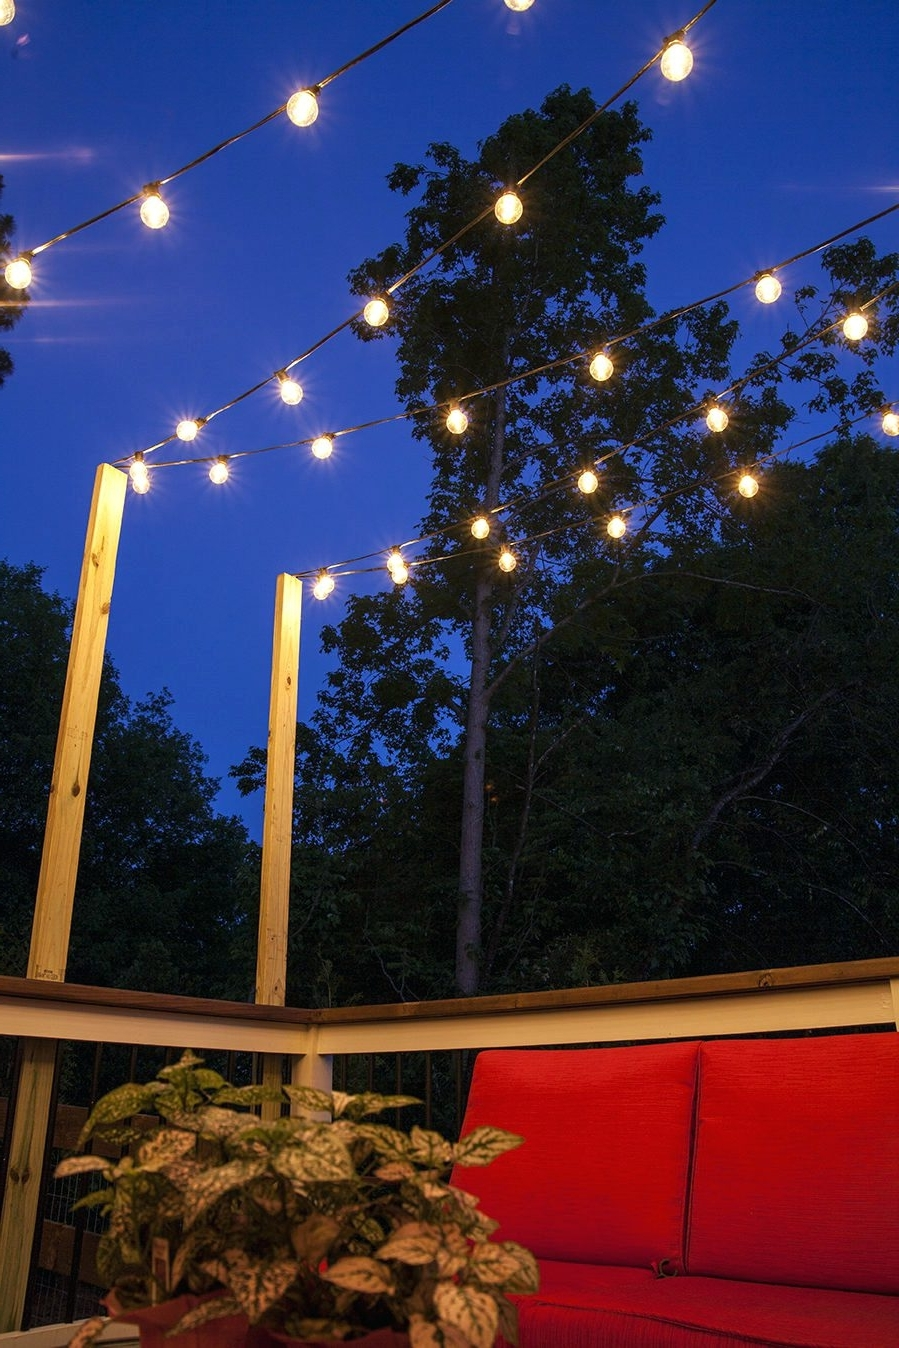 Most Current Patio Ideas ~ Costco Outdoor Patio Solar Lights Hang Patio String With Regard To Hanging Outdoor String Lights At Costco (View 6 of 20)